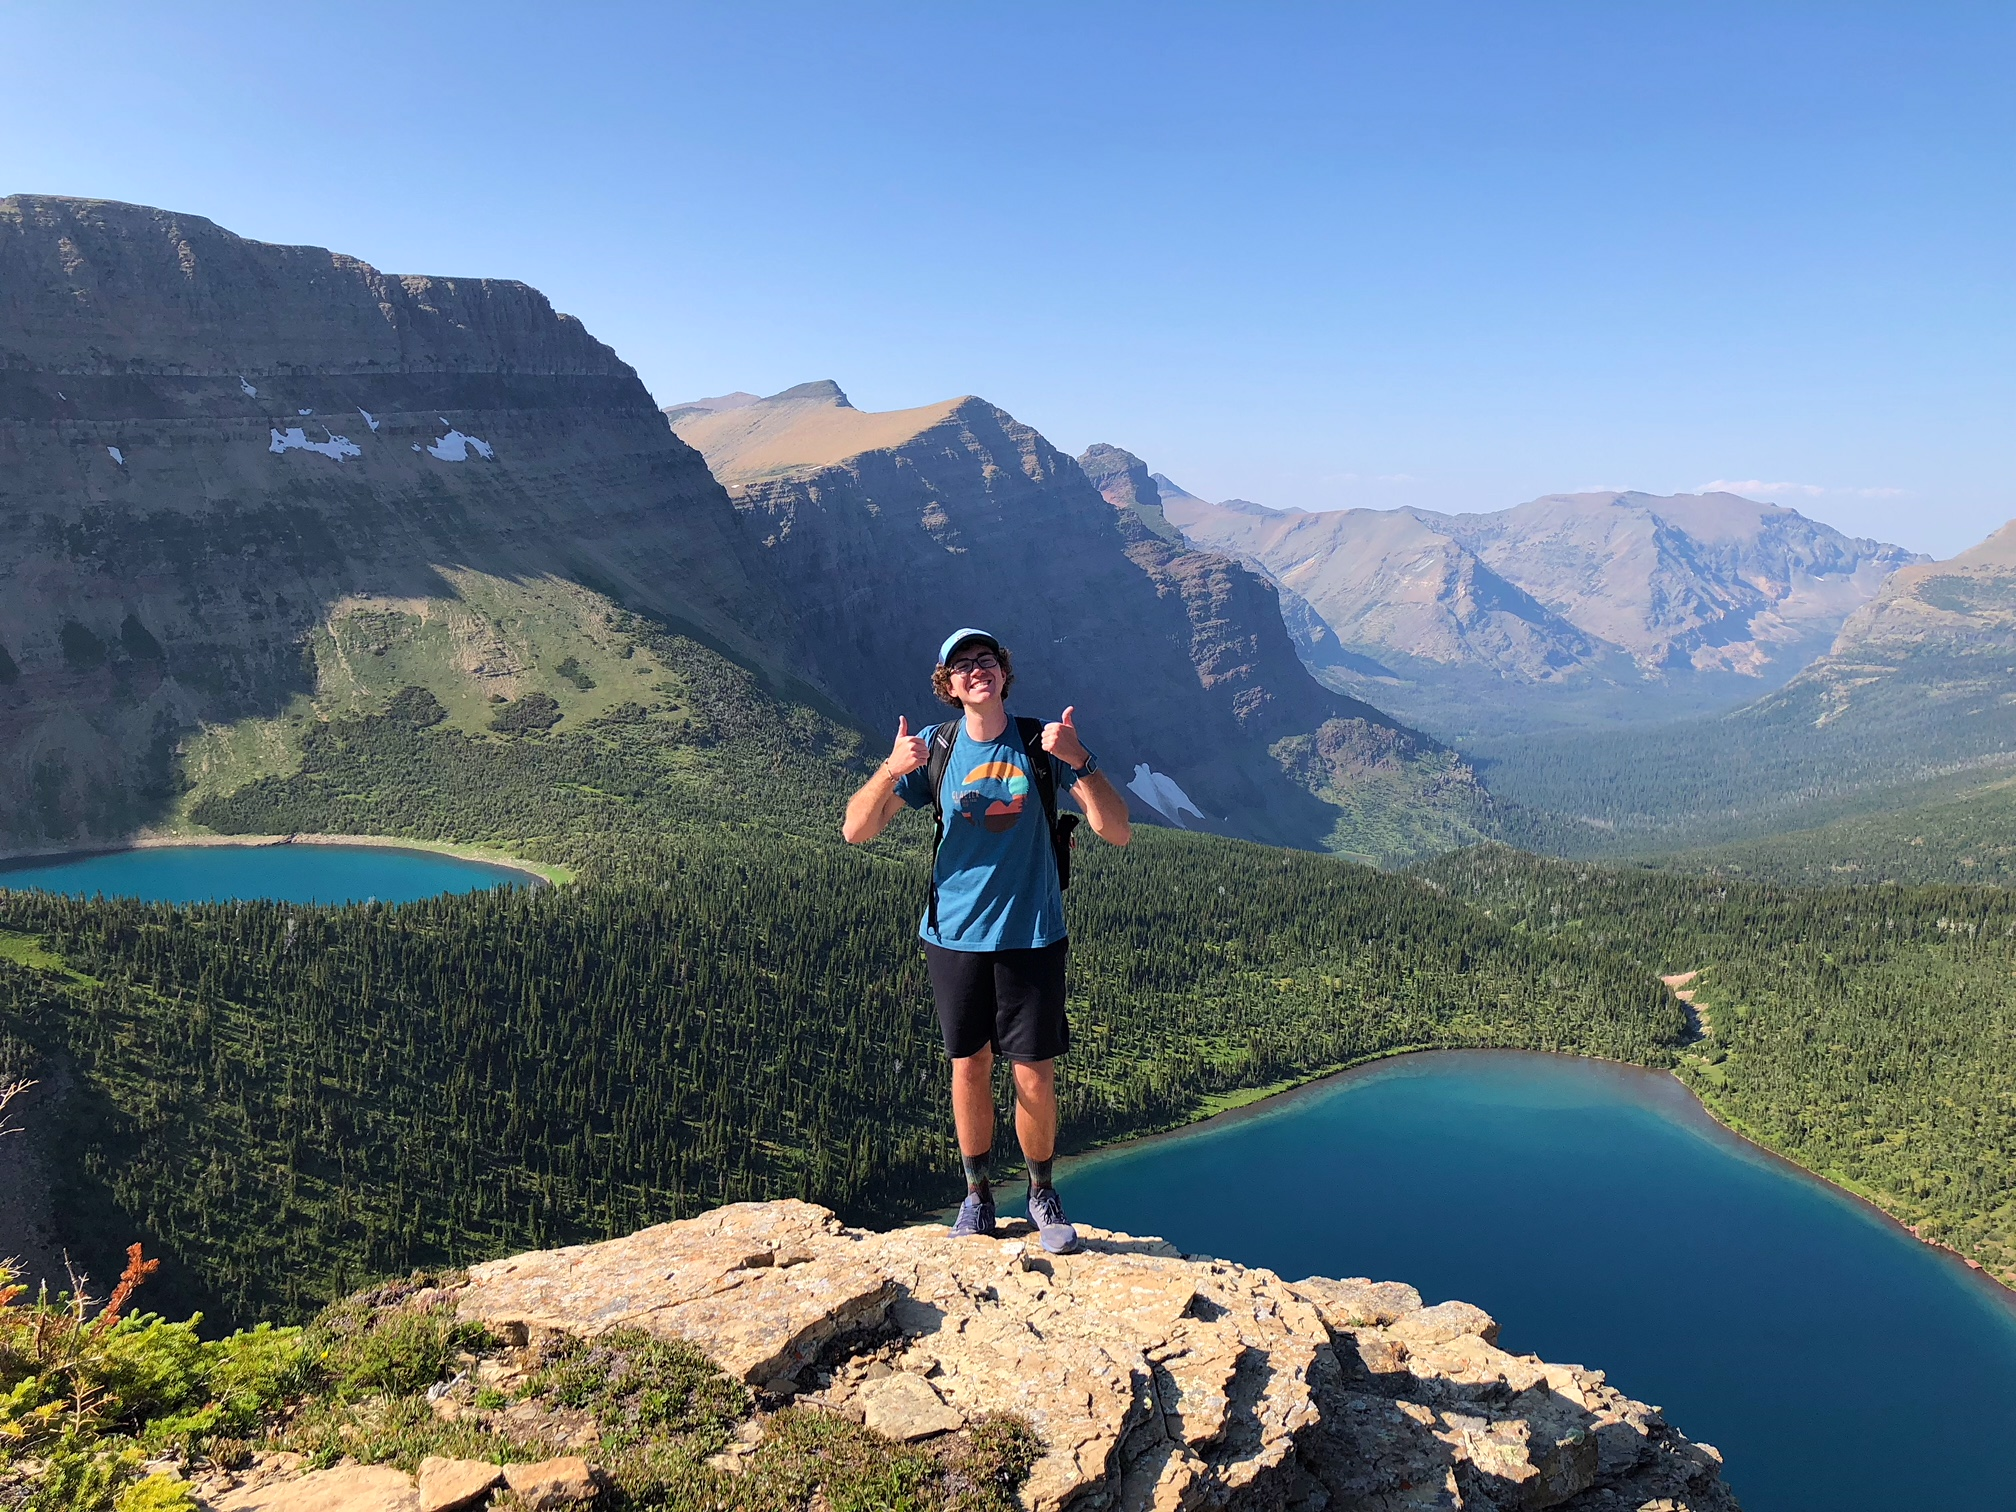 A man smiles and holds his thumbs up with mountains and turquoise lakes in the background